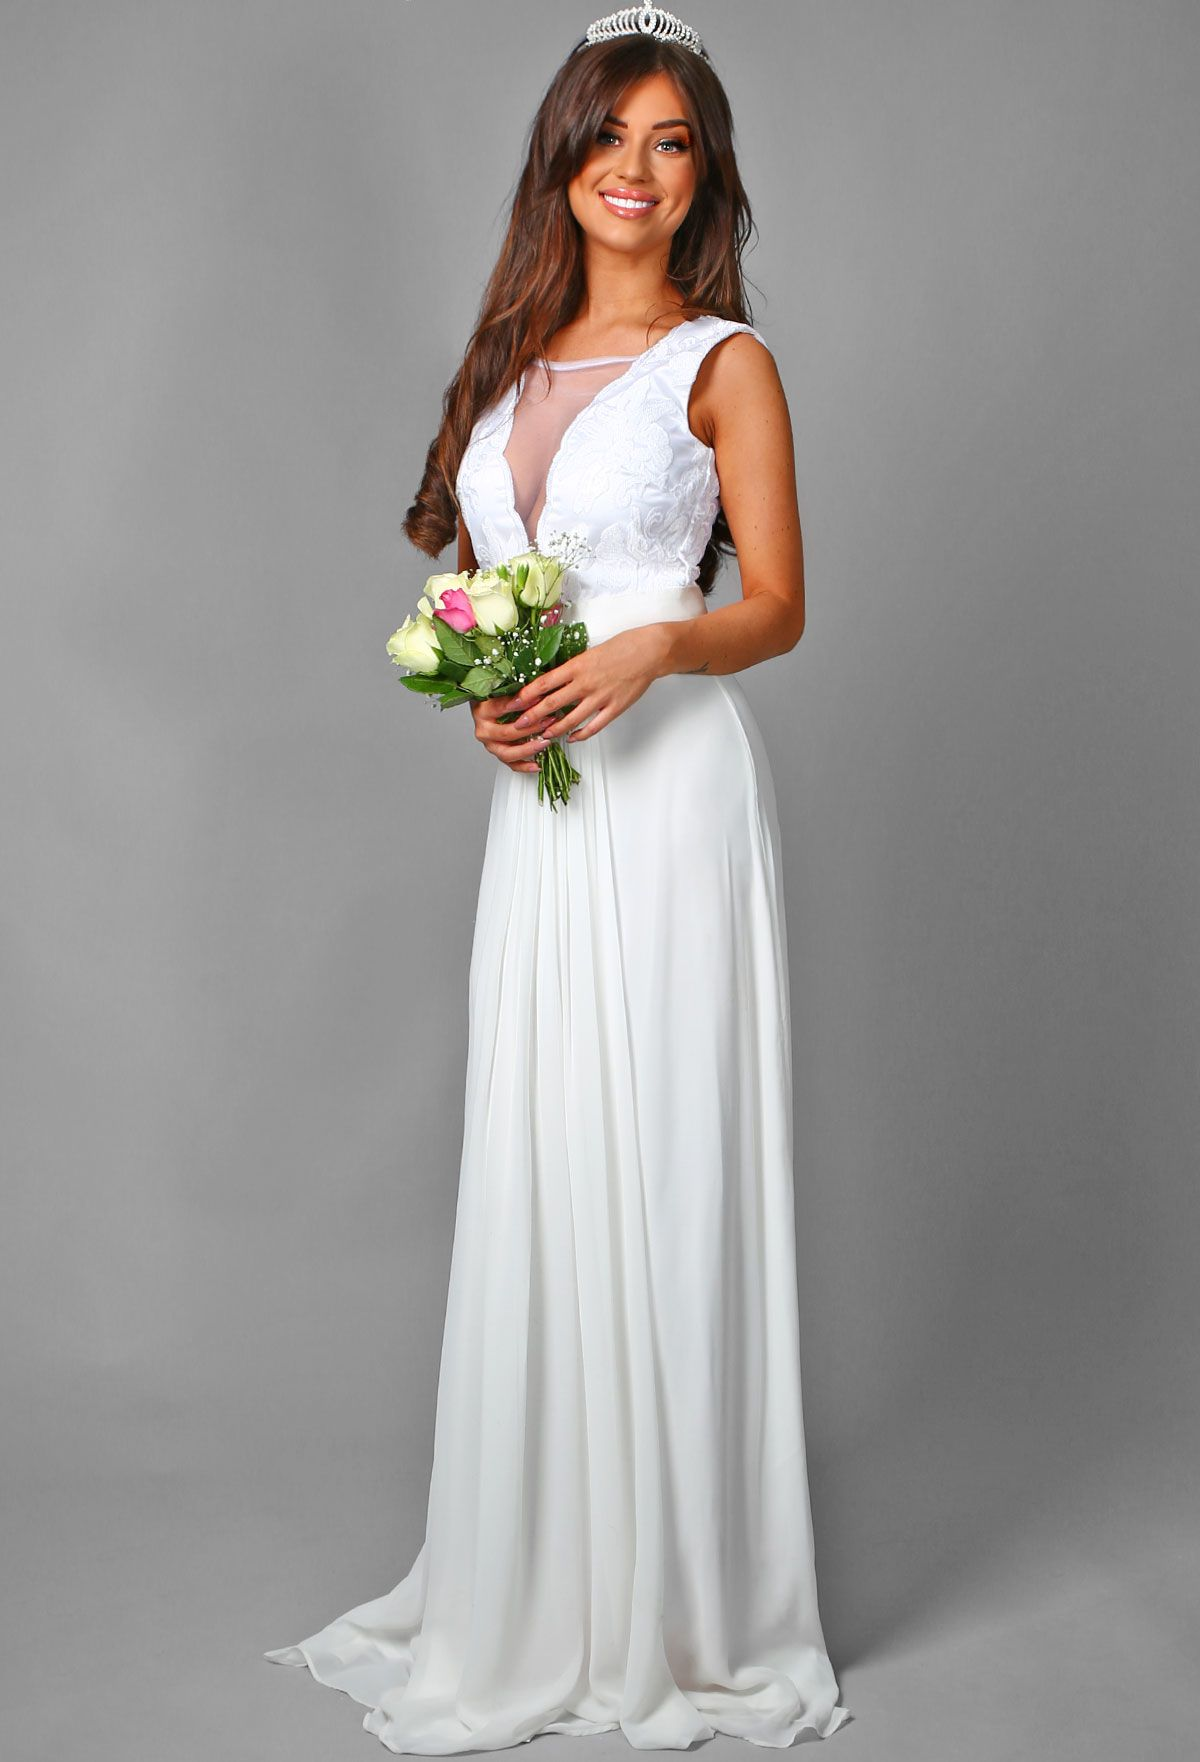 So glam! Our Annabelle Bridal dress is perfect for girls who want ...